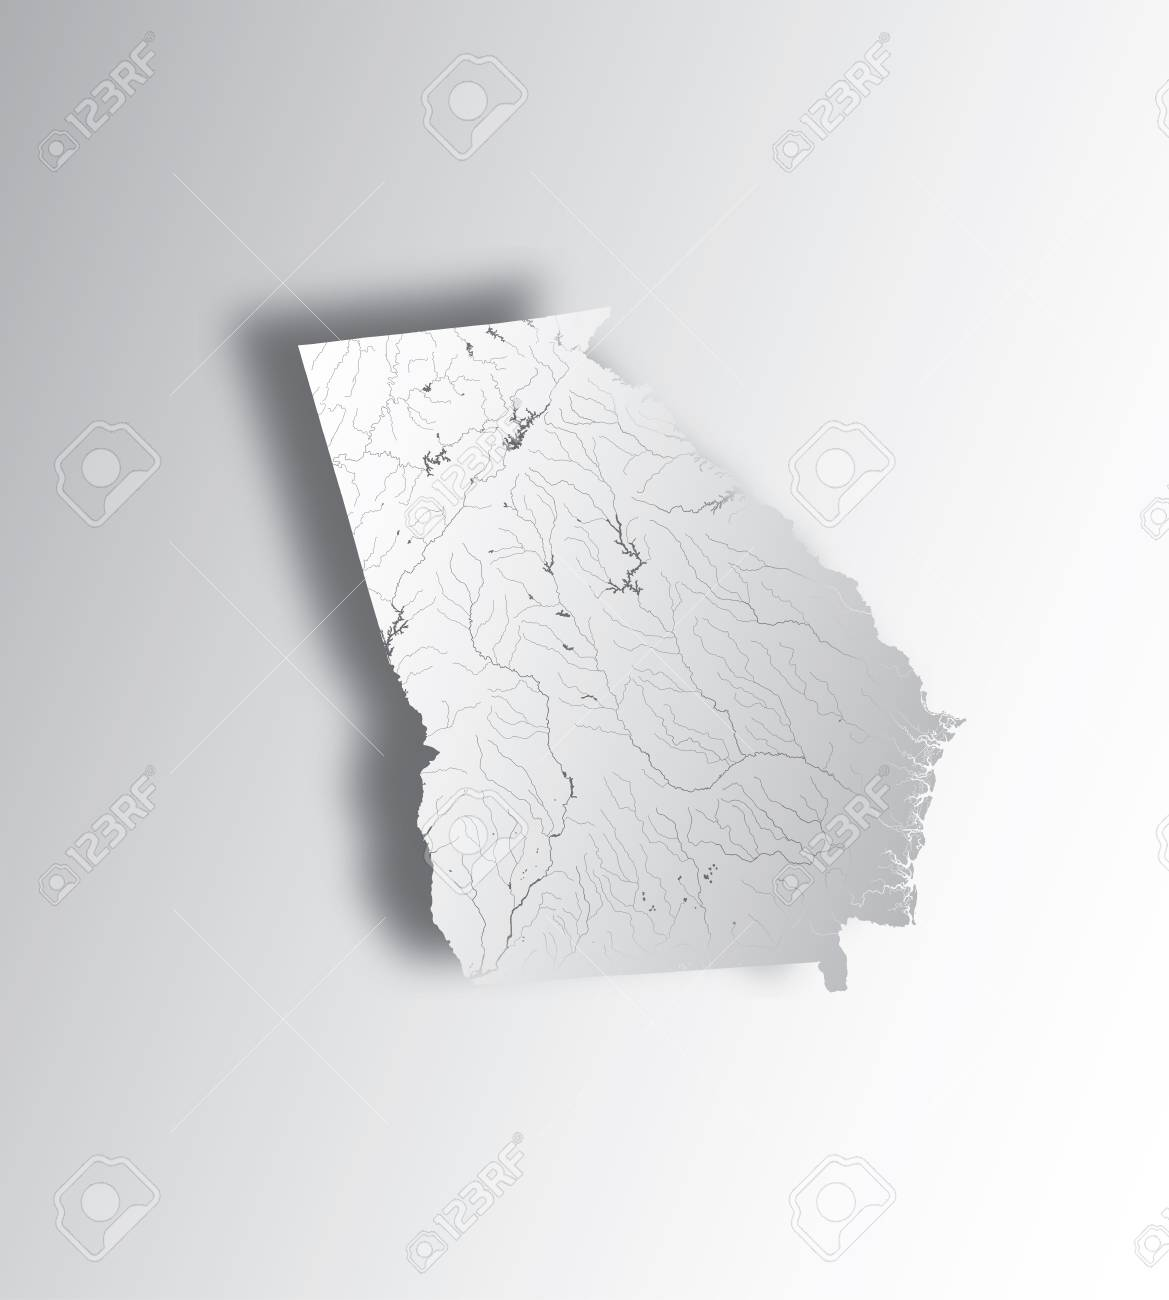 Map Of Georgia Rivers And Lakes.U S States Map Of Georgia State With Paper Cut Effect Hand